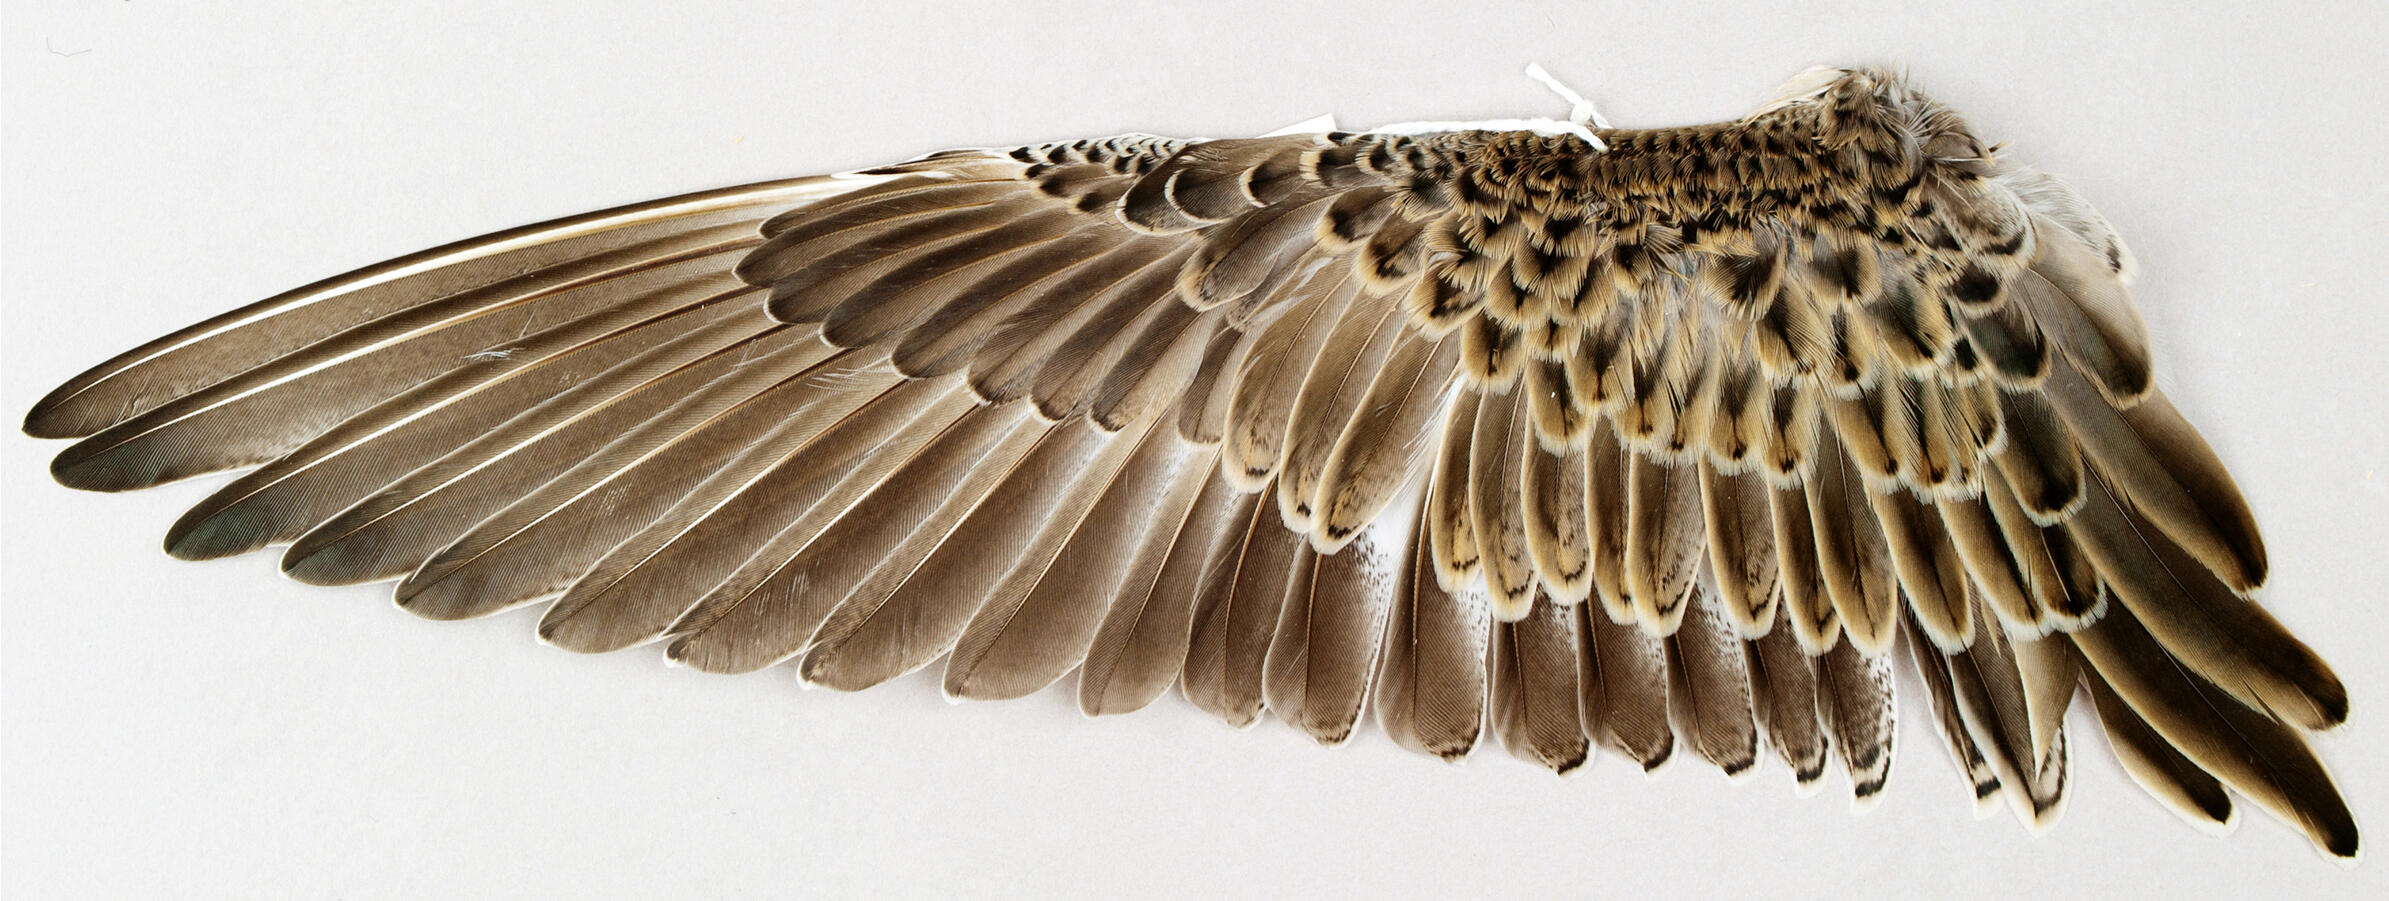 Behind the Scenes of the World's Largest Bird Wing ...